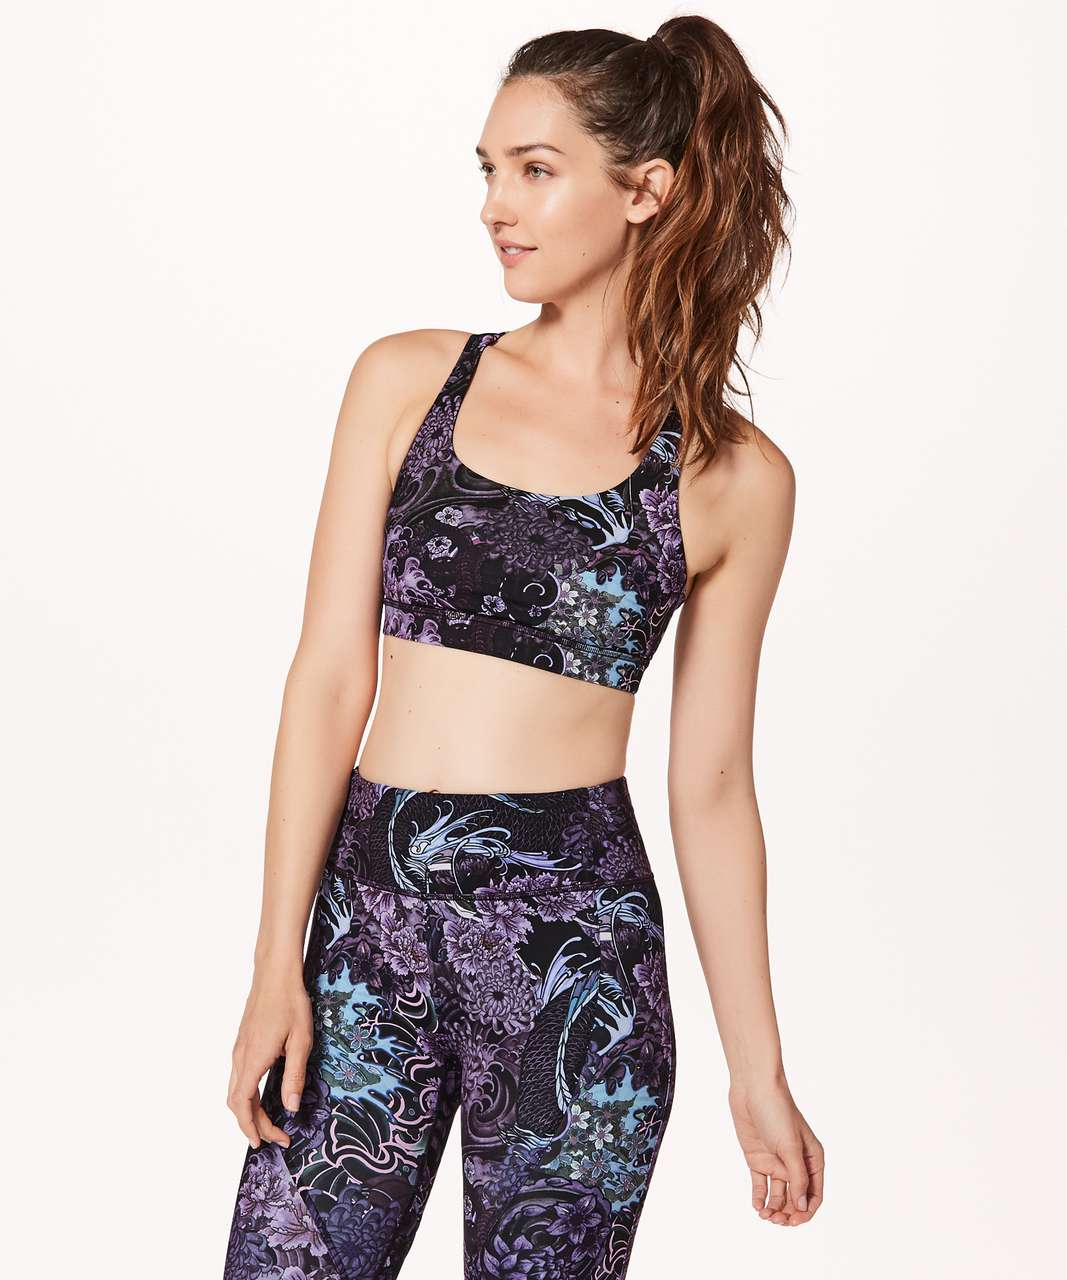 Lululemon Energy Bra - Memoir Multi Purple